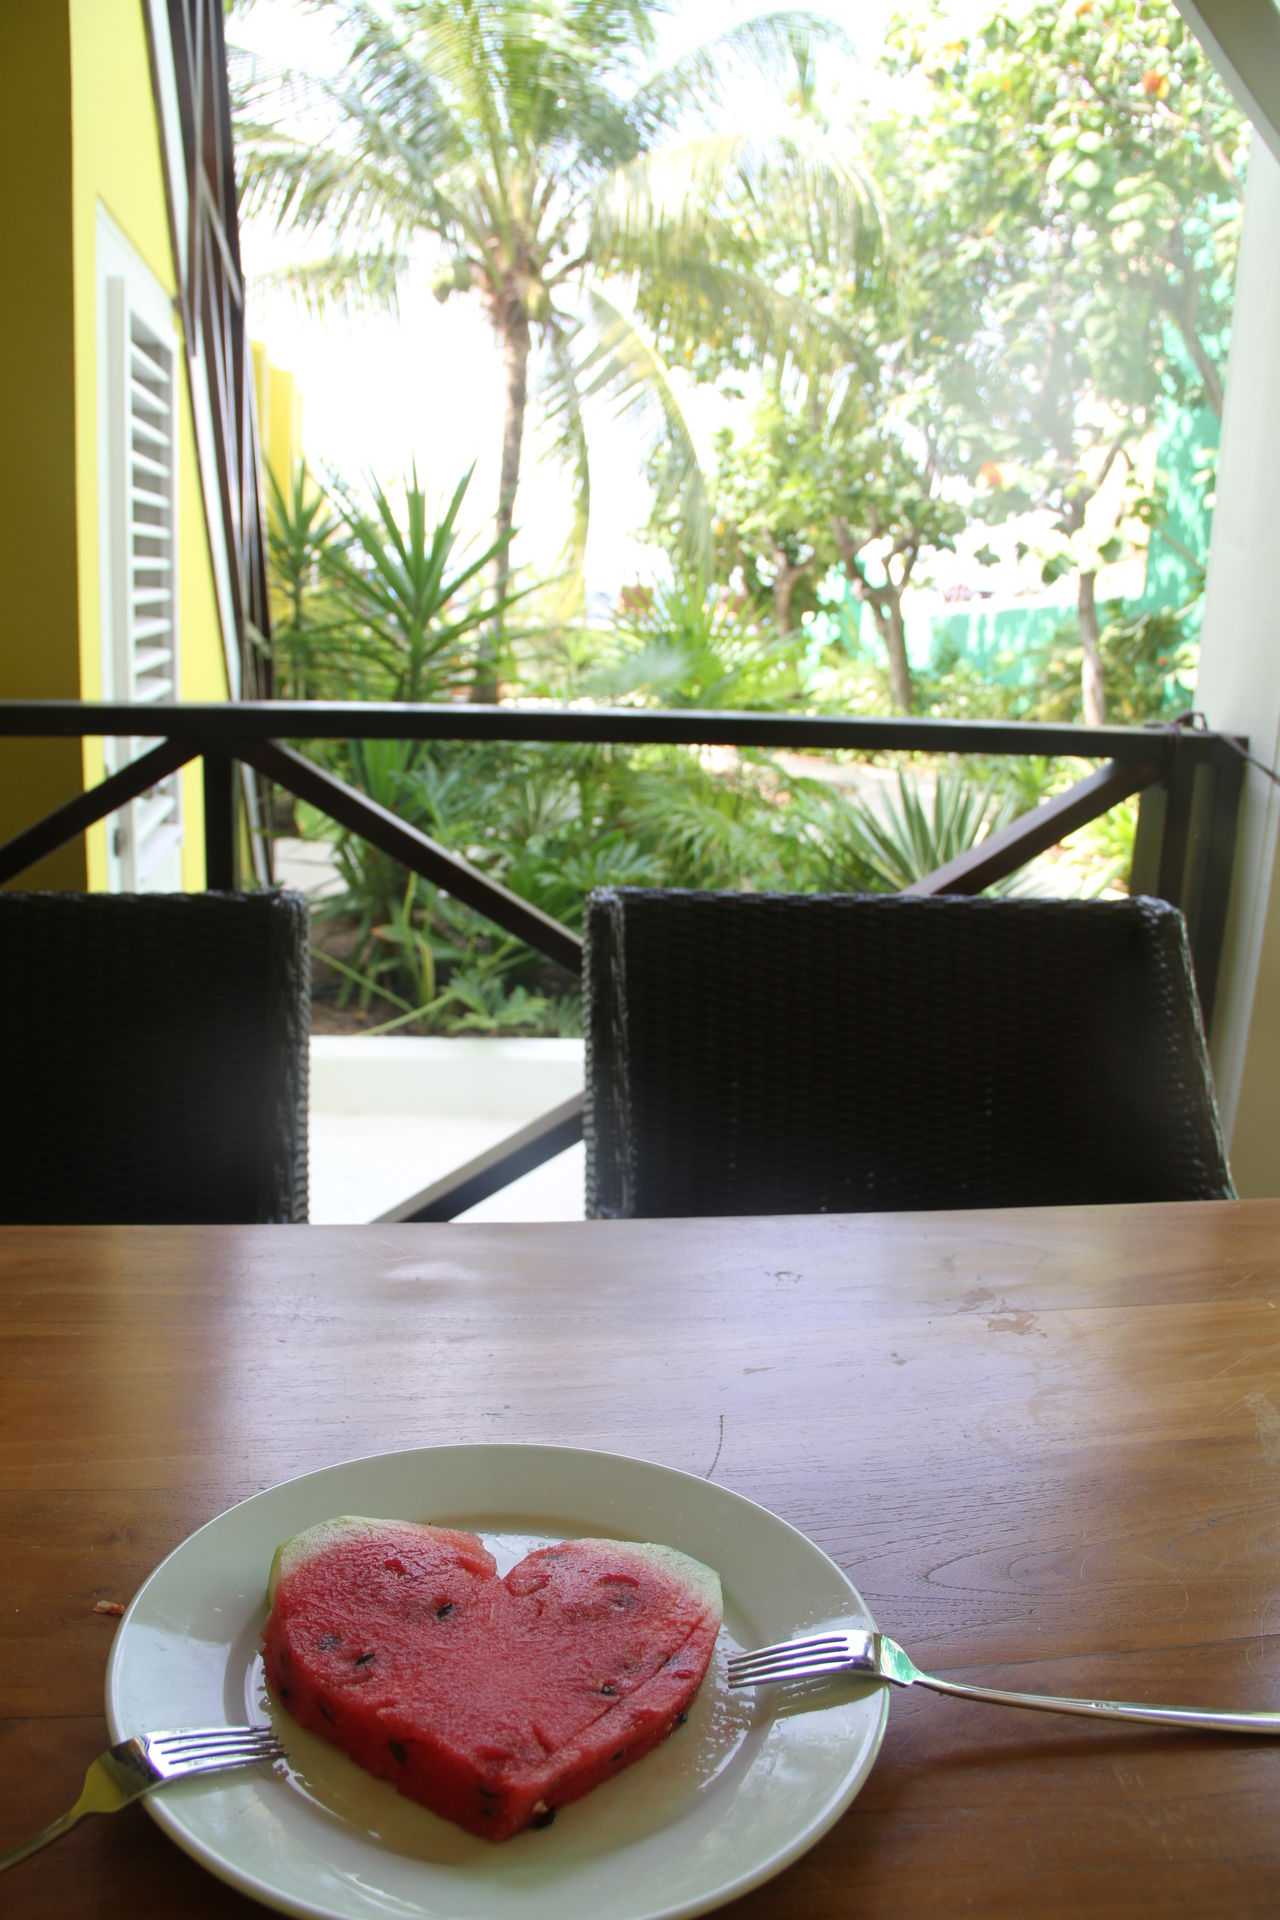 Day Exotic Freshness Healthy Eating Heart Melon No People Plate Summertime Sweet Food Table Water Melon